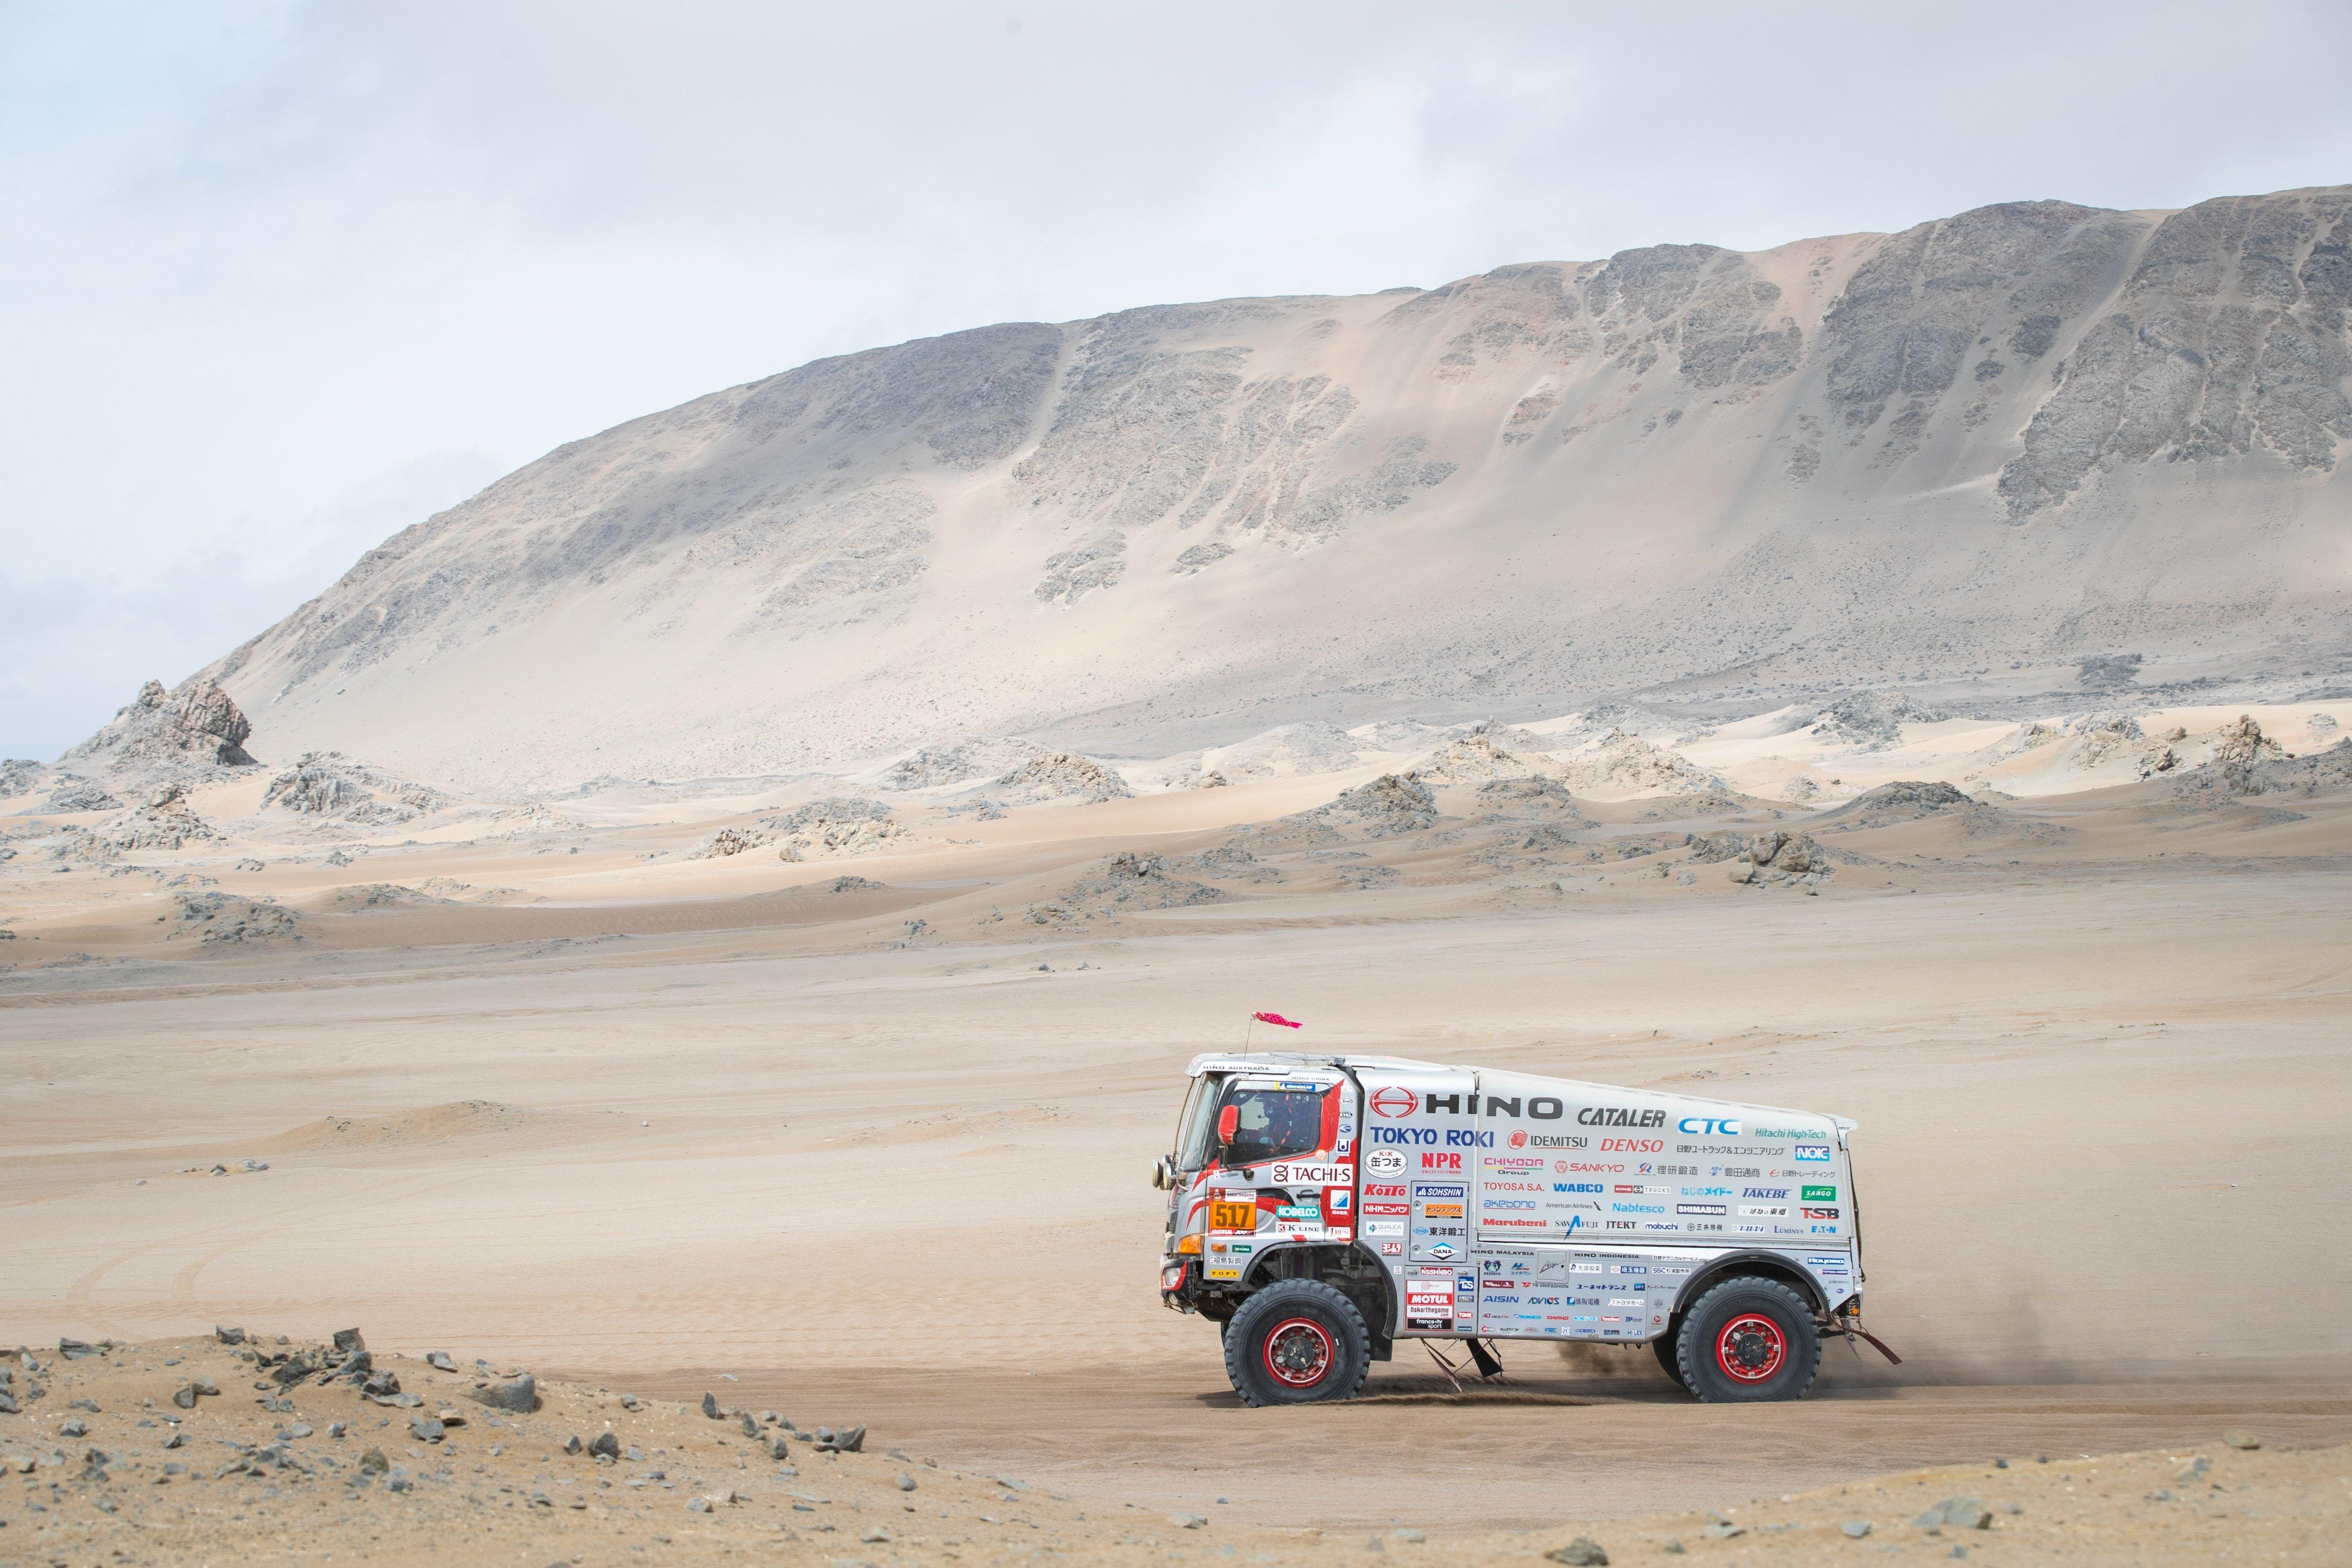 [DAY 10: Stage 8] Car 2 Climbs to 8th Position Despite Being Stuck. Car 1 Is On Course in the Semi-Marathon.